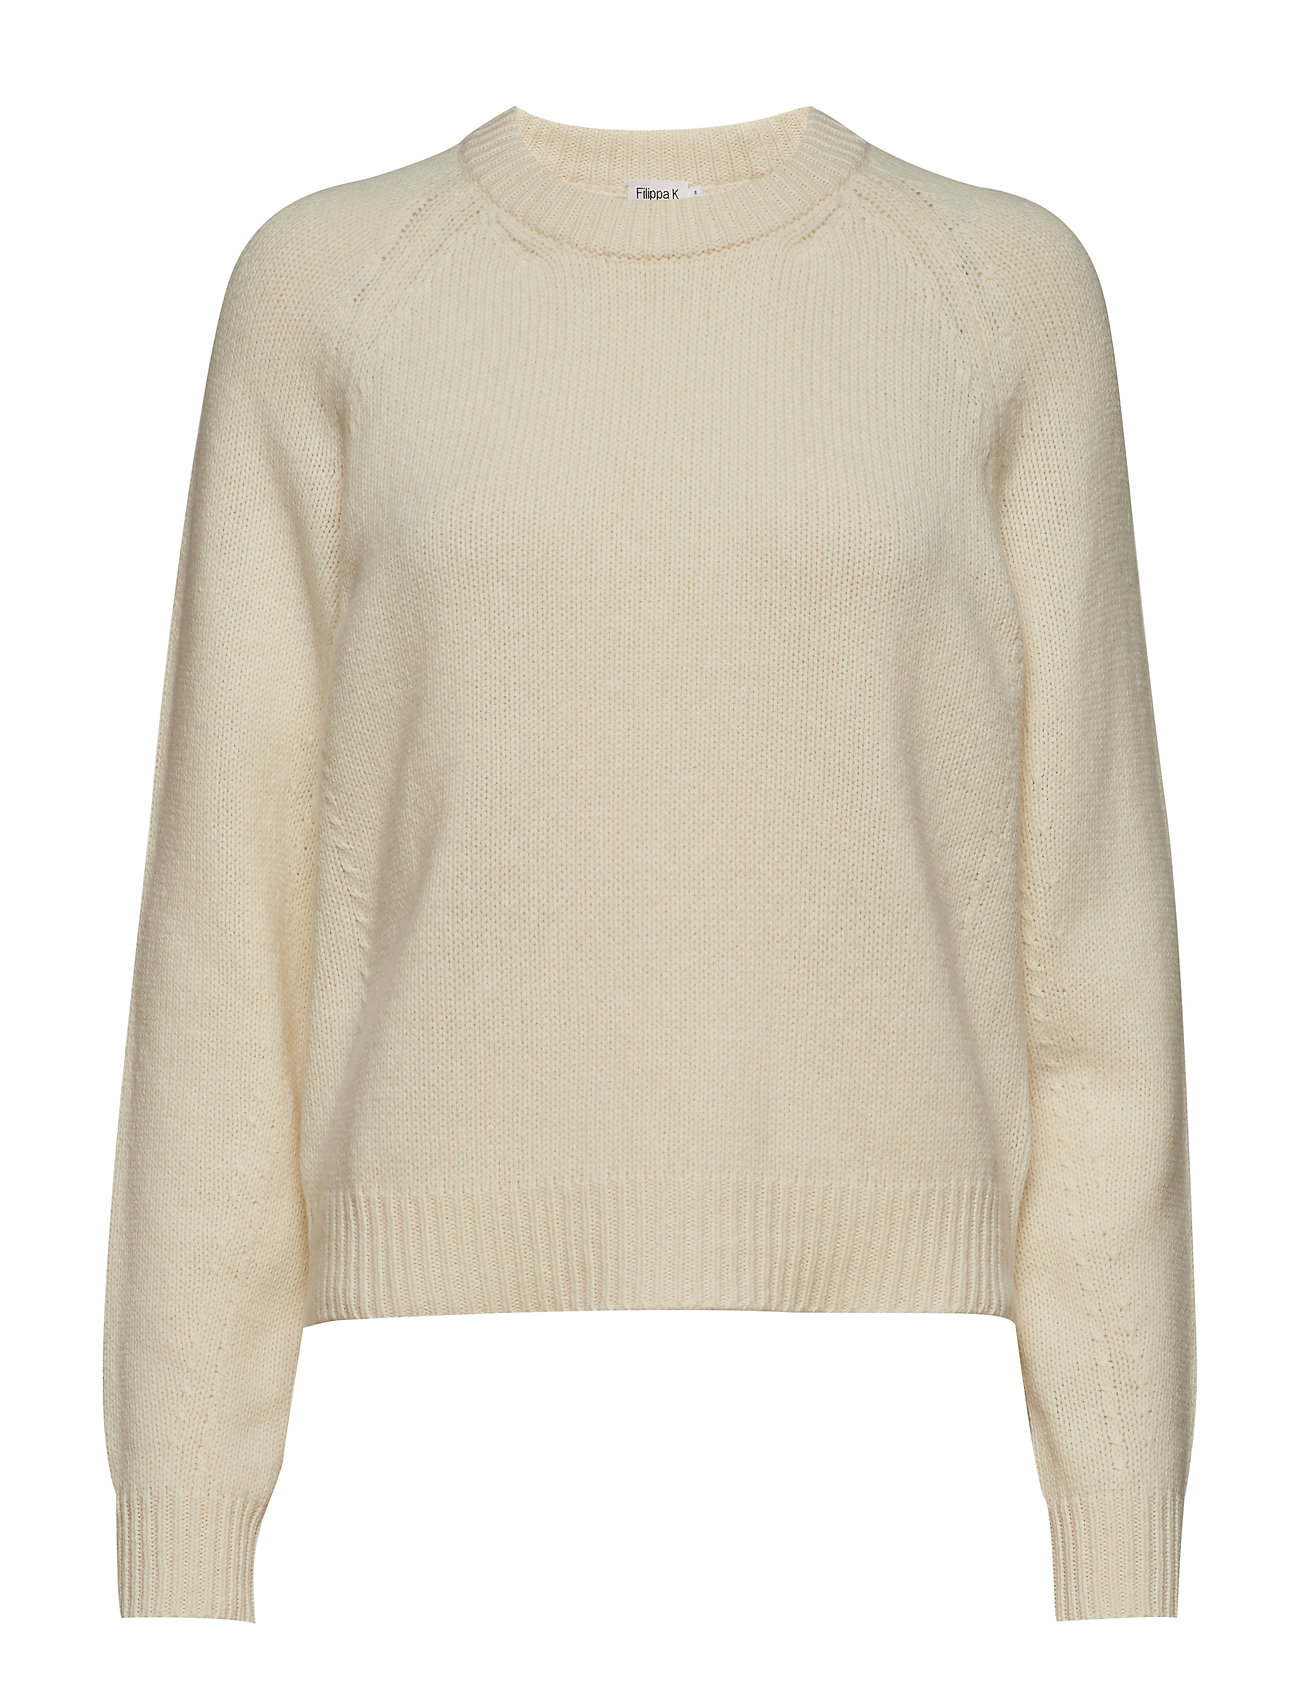 Filippa K Soft R-Neck Sweater - OFF WHITE